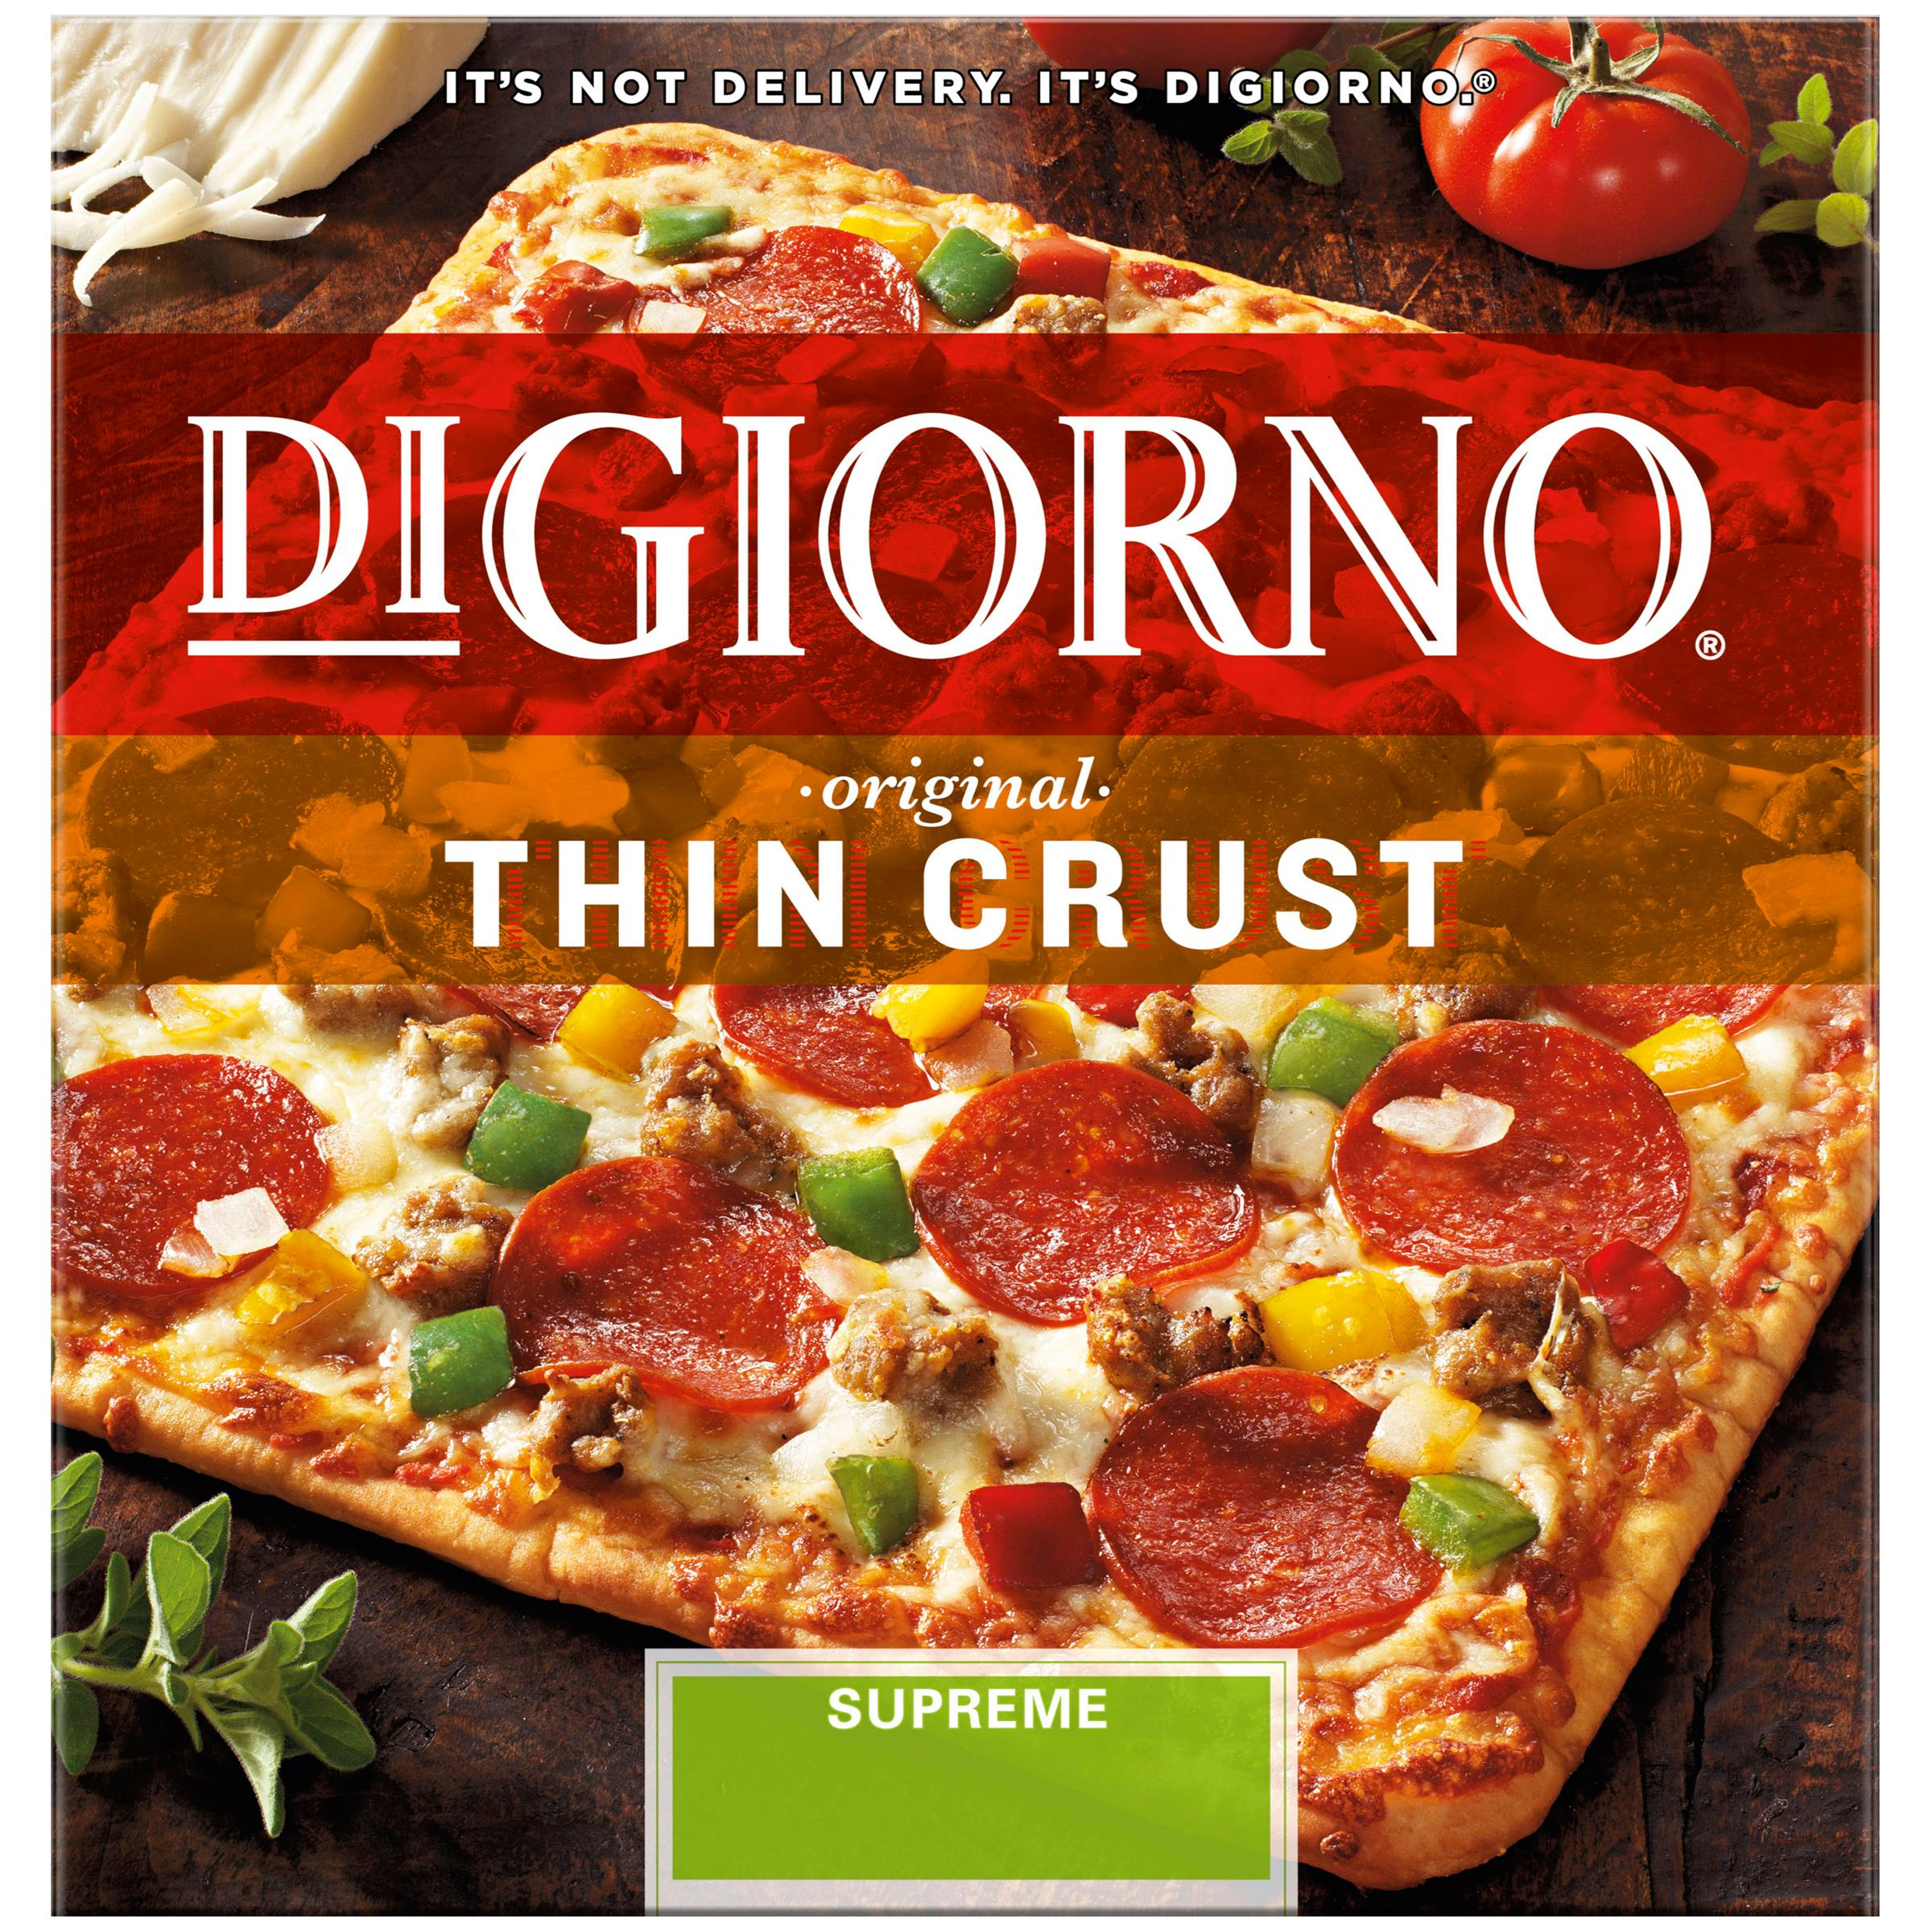 digiorno advertising market research